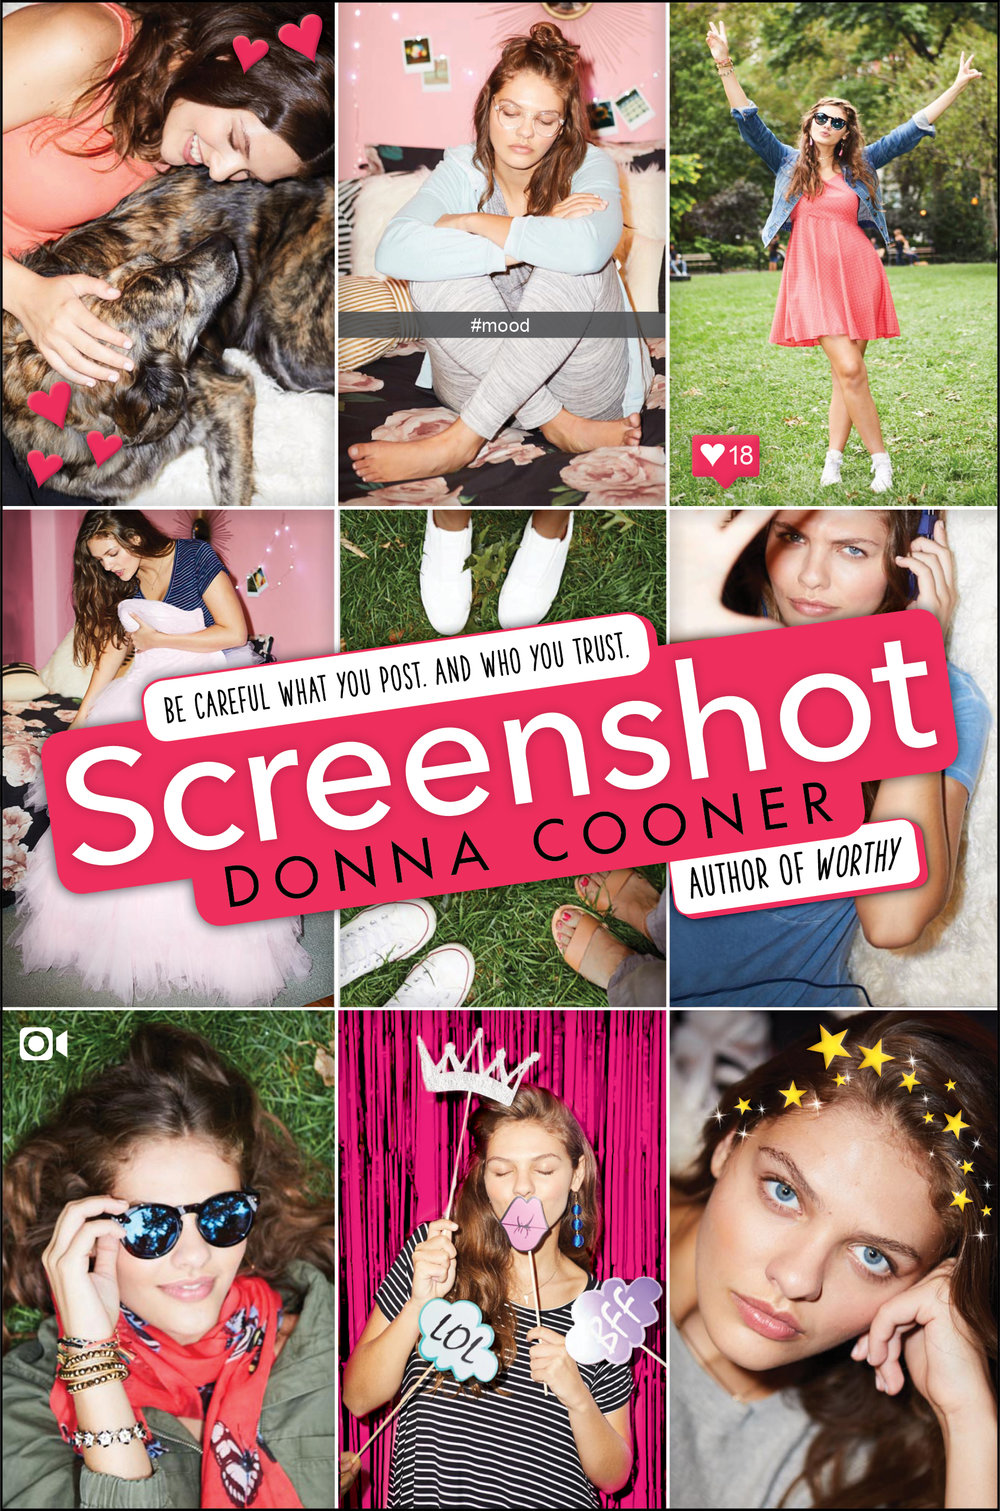 Screenshot - Skye's social media game is always on point. Until her best friend, Asha, films an embarrassing video of Skye at a sleepover and posts it online ...Available May 29th!